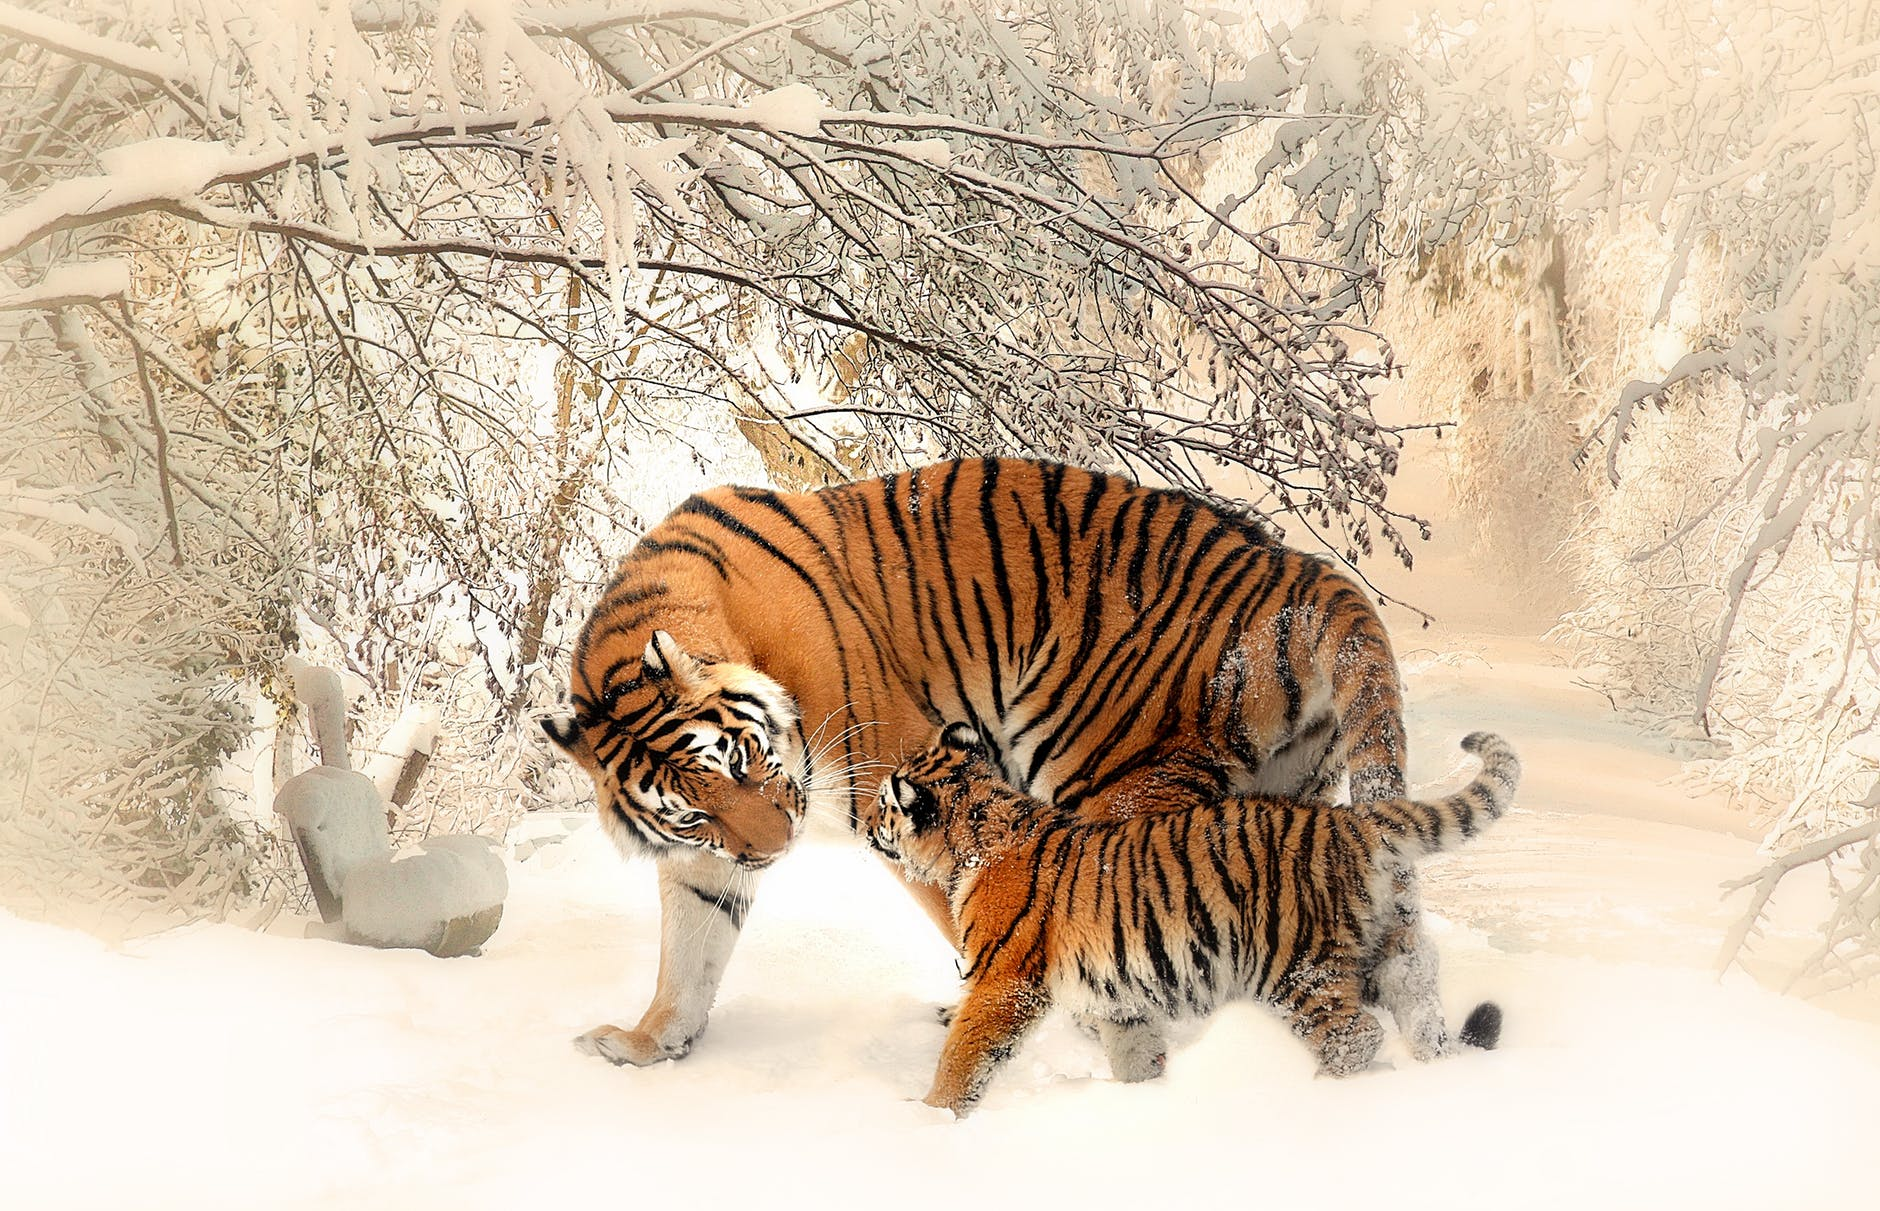 adult and cub tiger on snowfield near bare trees